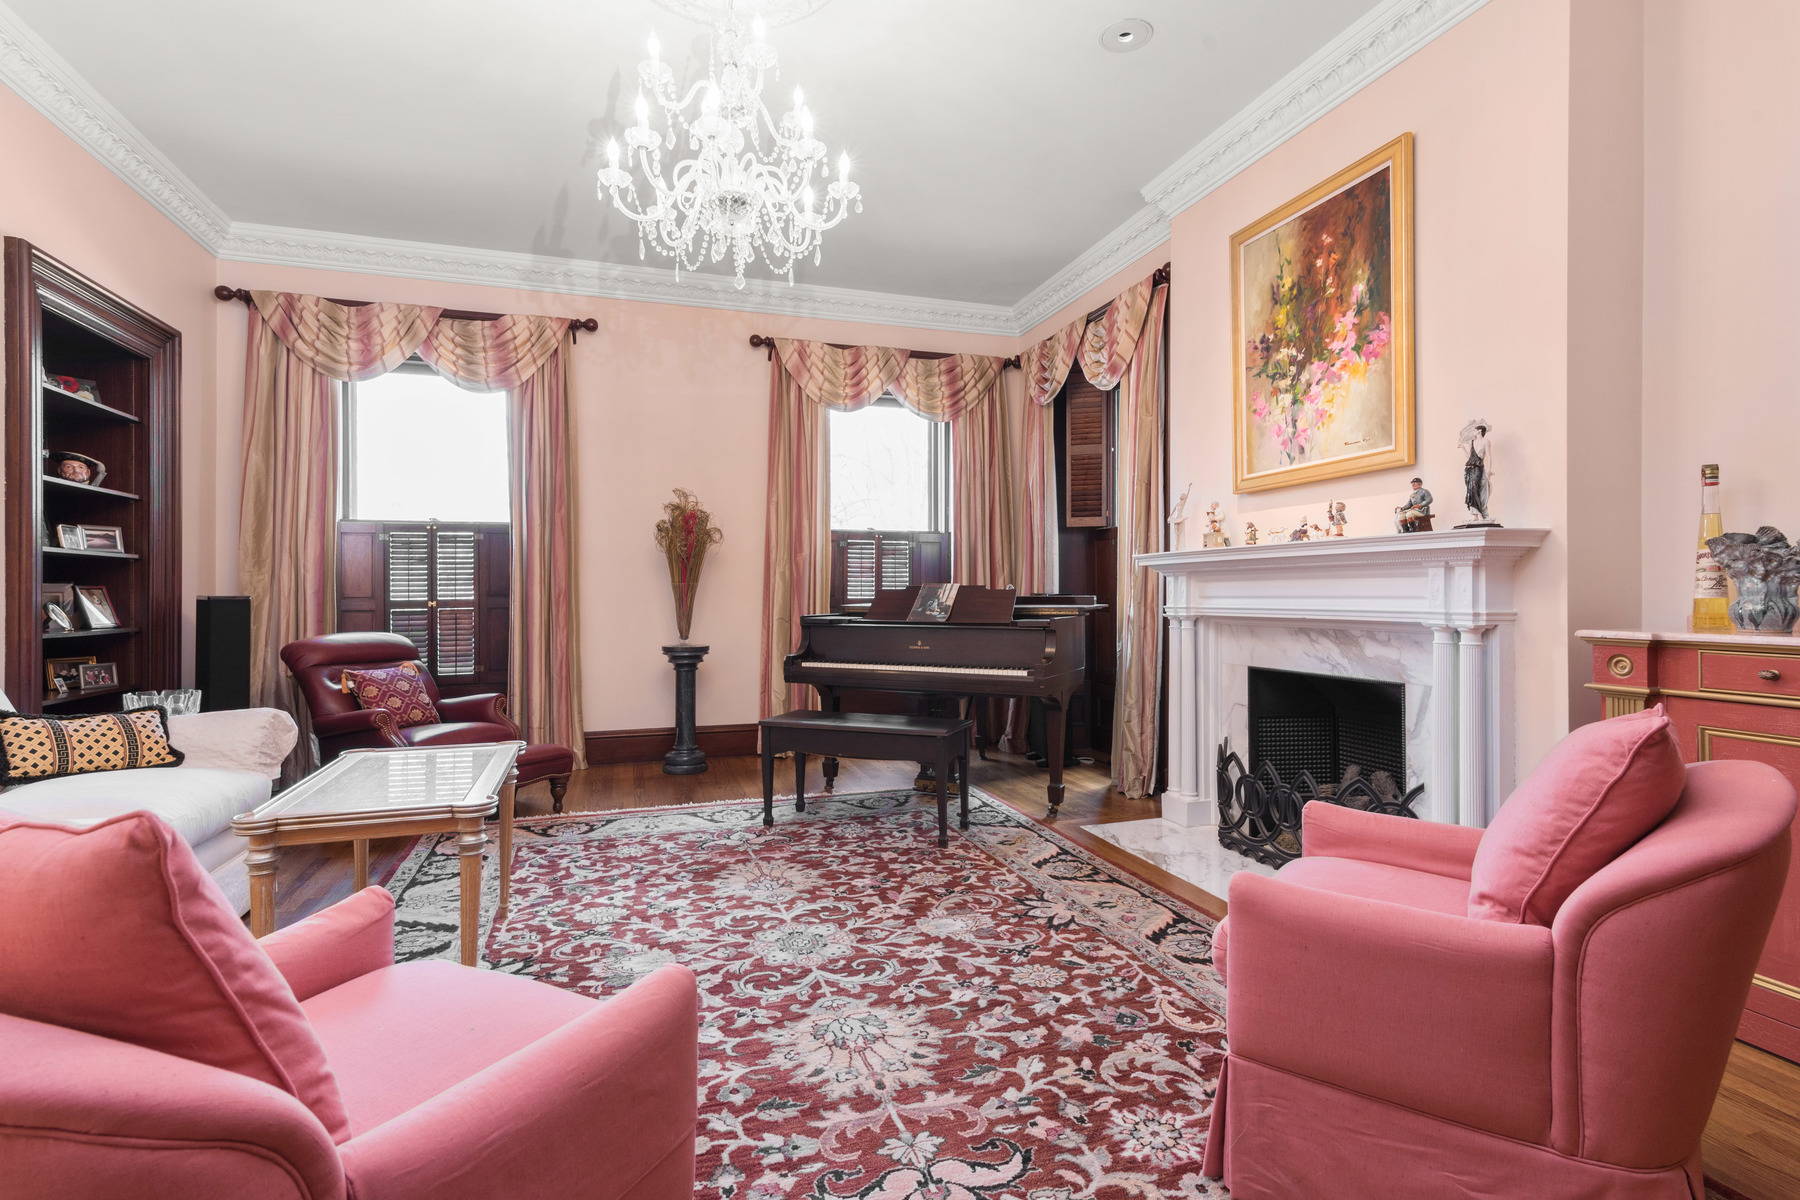 Single Family Home for Sale at 3 Arlington St 0, Boston Back Bay, Boston, Massachusetts, 02116 United States